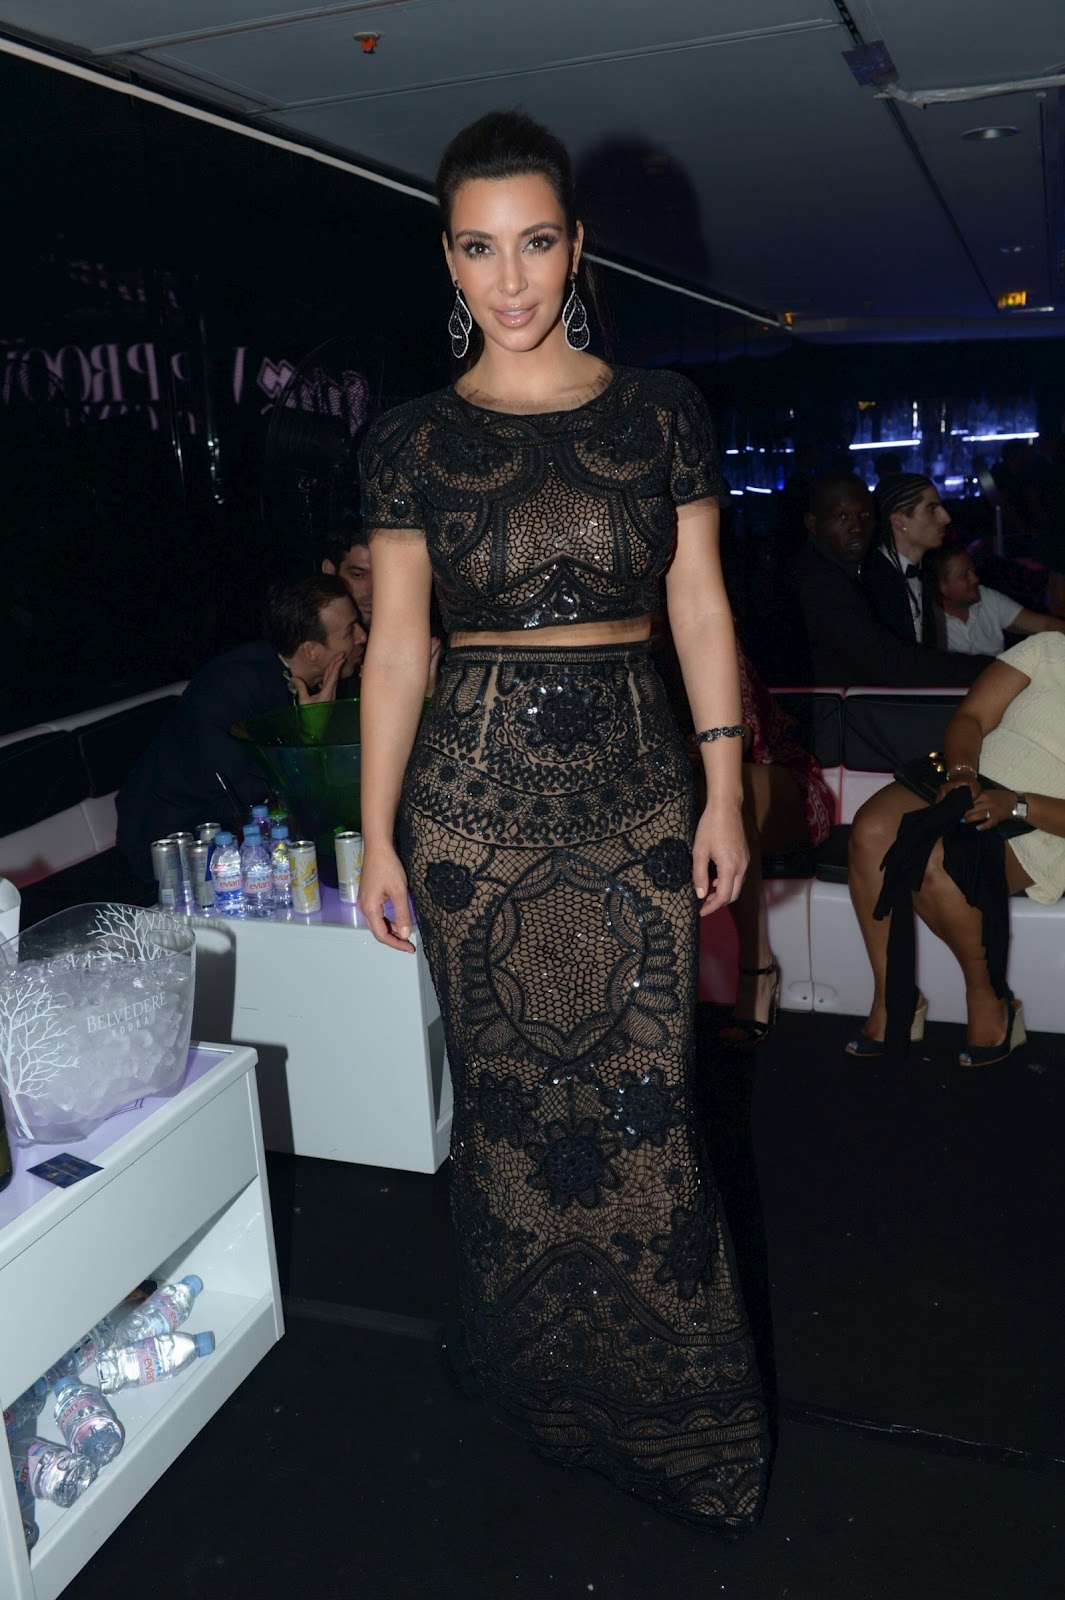 http://3.bp.blogspot.com/-lNuLKEl28wM/T70sP7YC2EI/AAAAAAAAJnY/OdkVd4Bc8rg/s1600/Kim-Kardashian-See-Through-Cannes-5.jpg